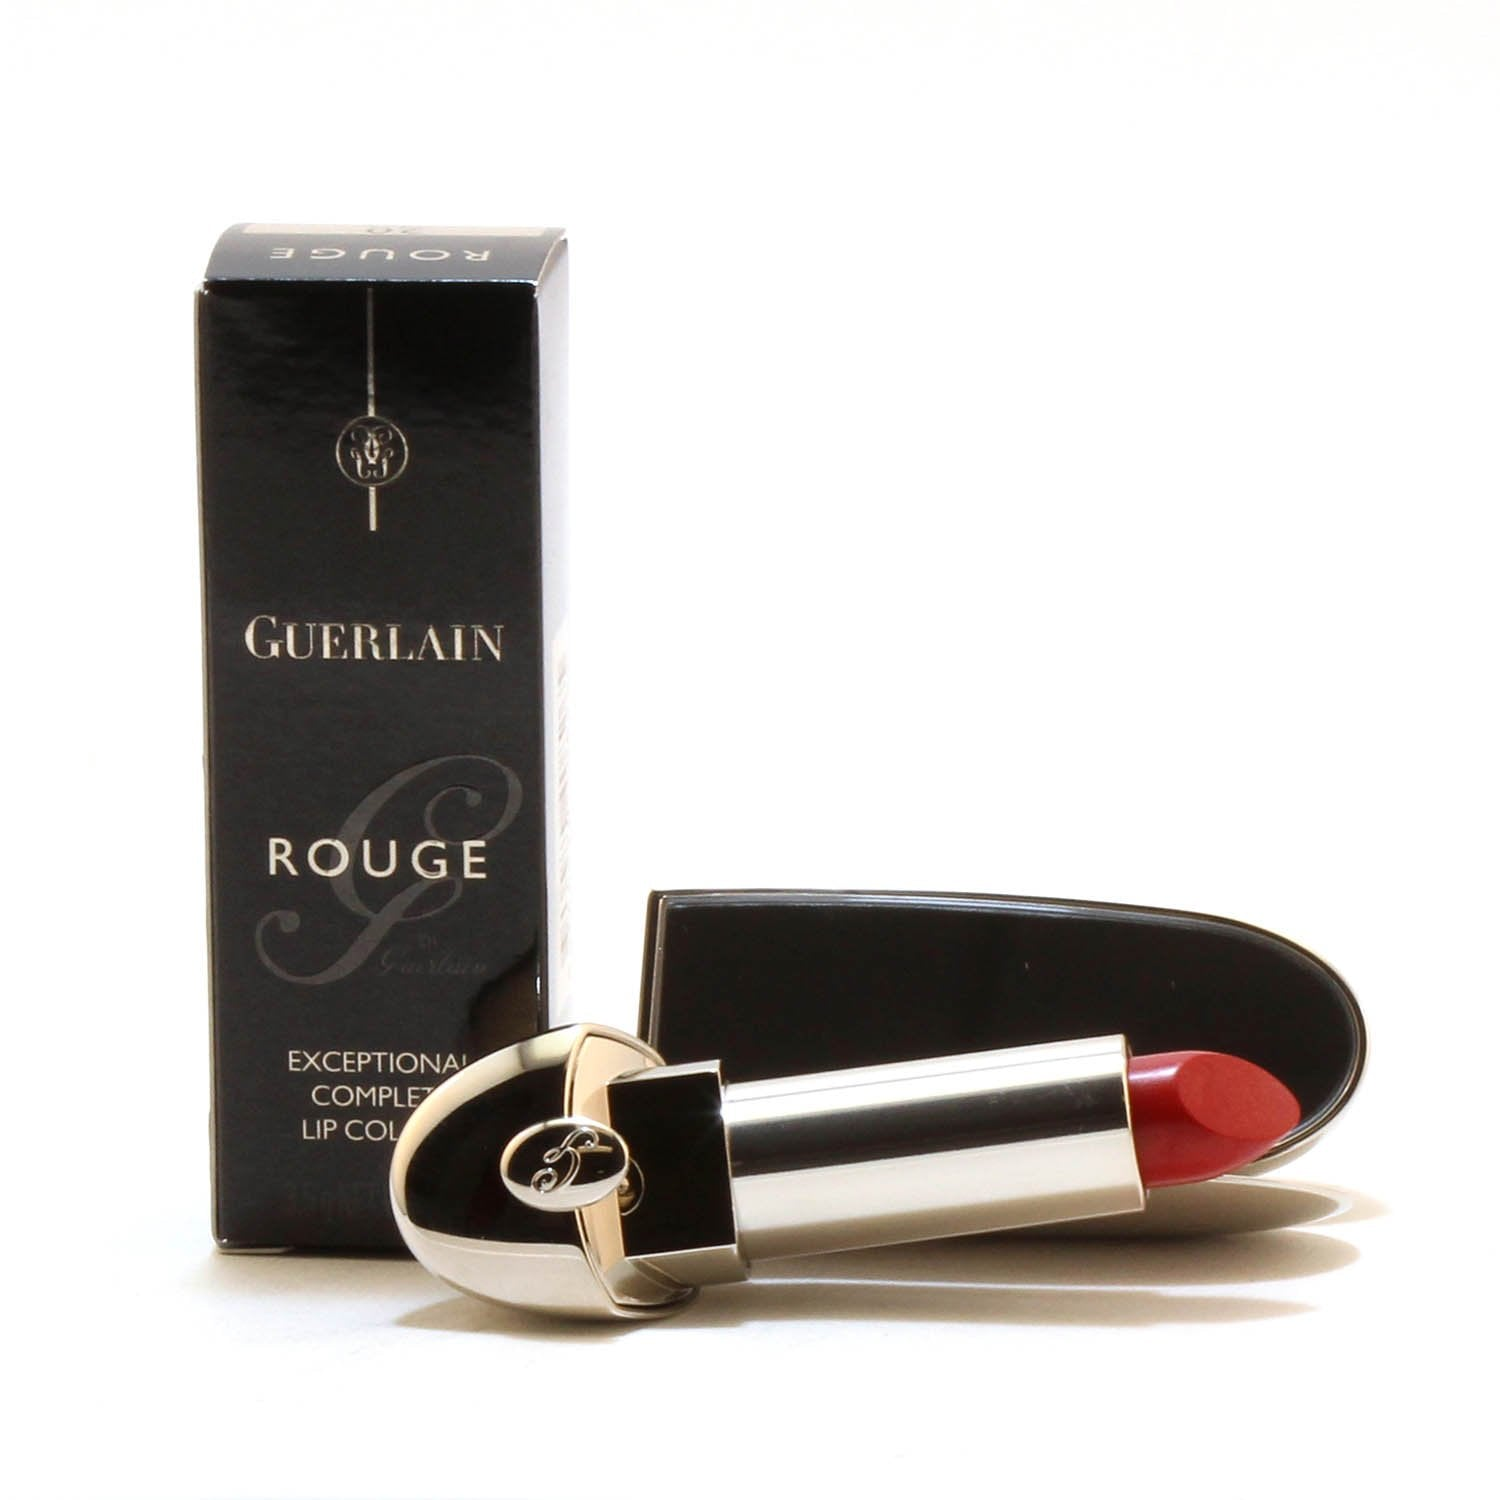 Makeup - GUERLAIN ROUGE G DE GUERLAIN EXCEPTIONAL COMPLETE LIP COLOUR - GINA